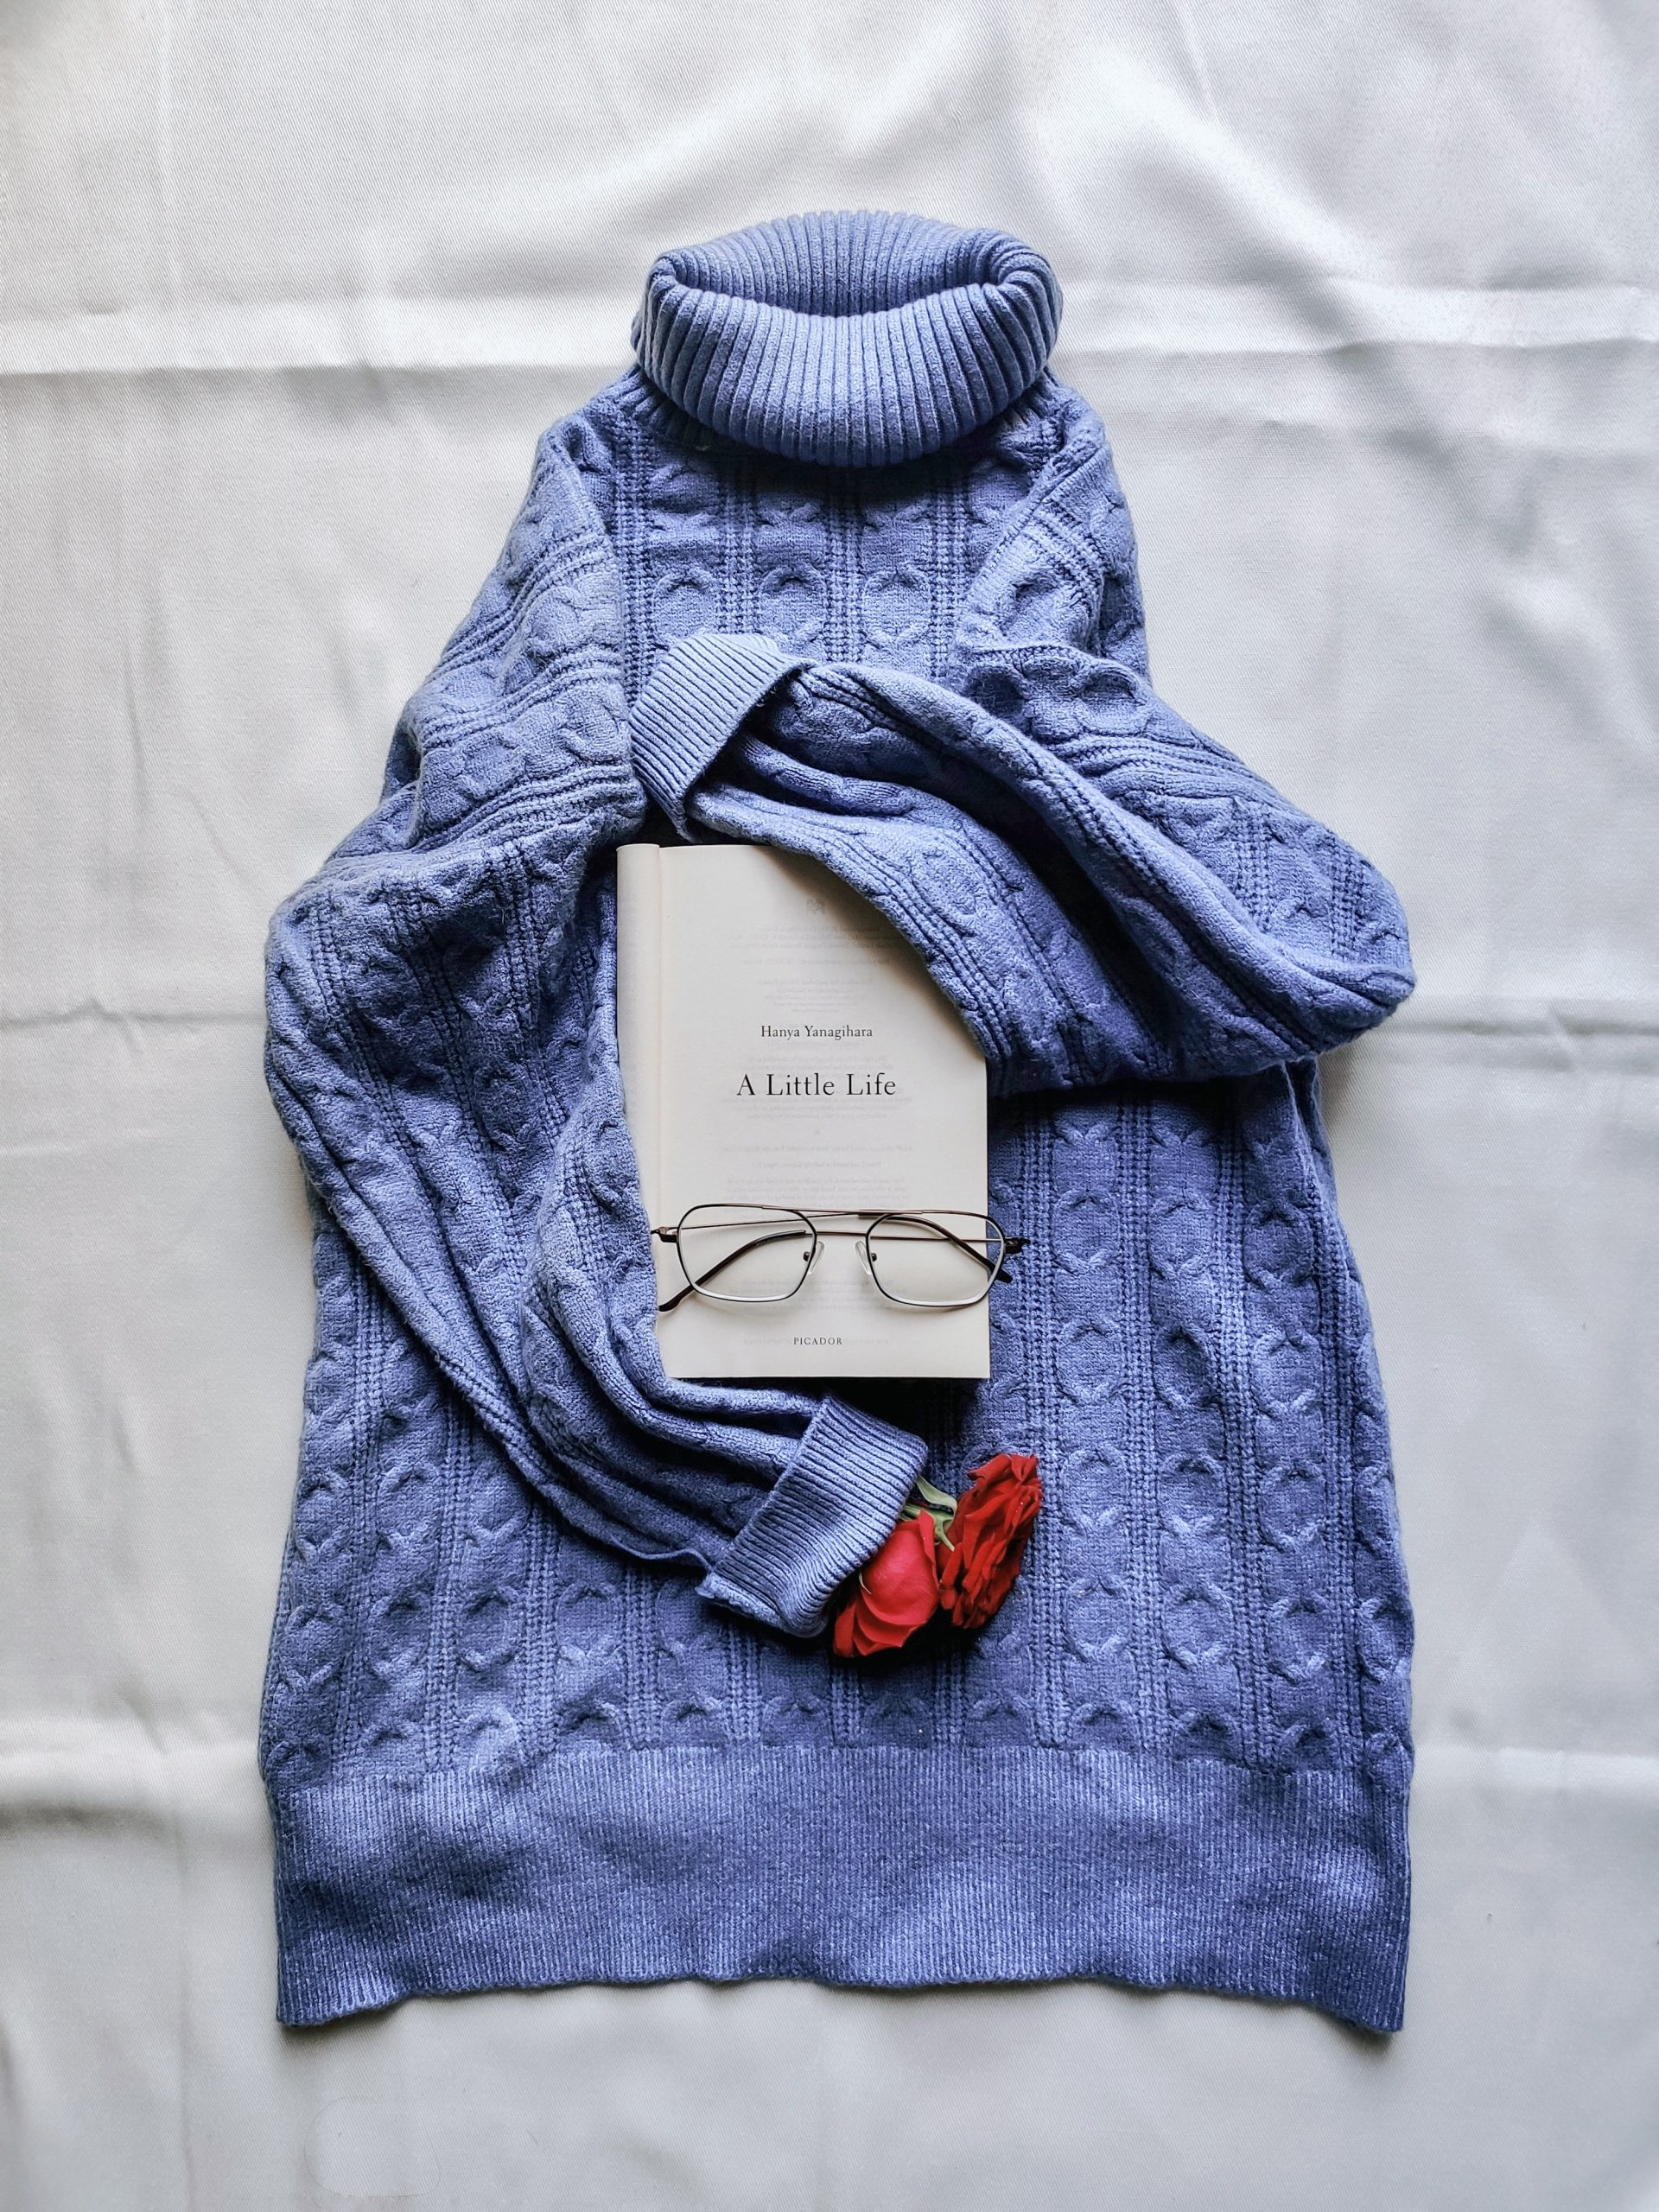 A book and sweat shirt